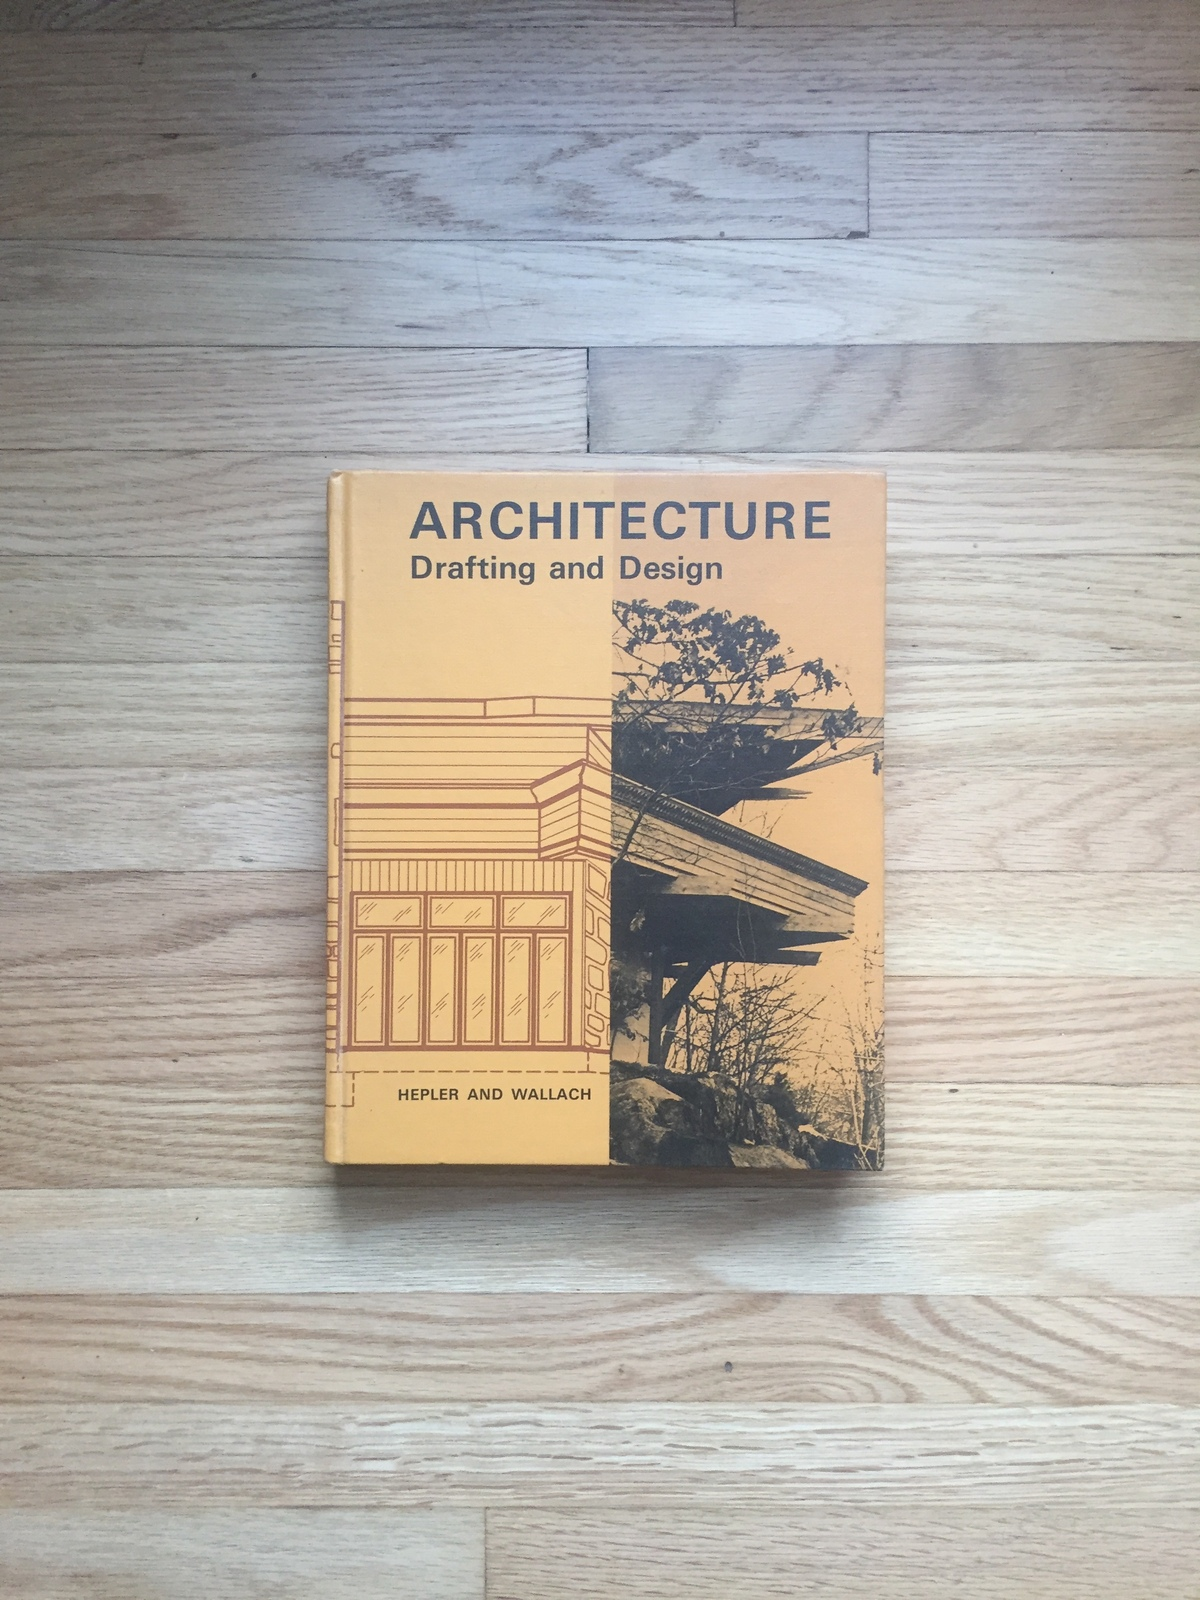 1965 Architecture - Drafting and Design textbook. By Hepler and Wallach